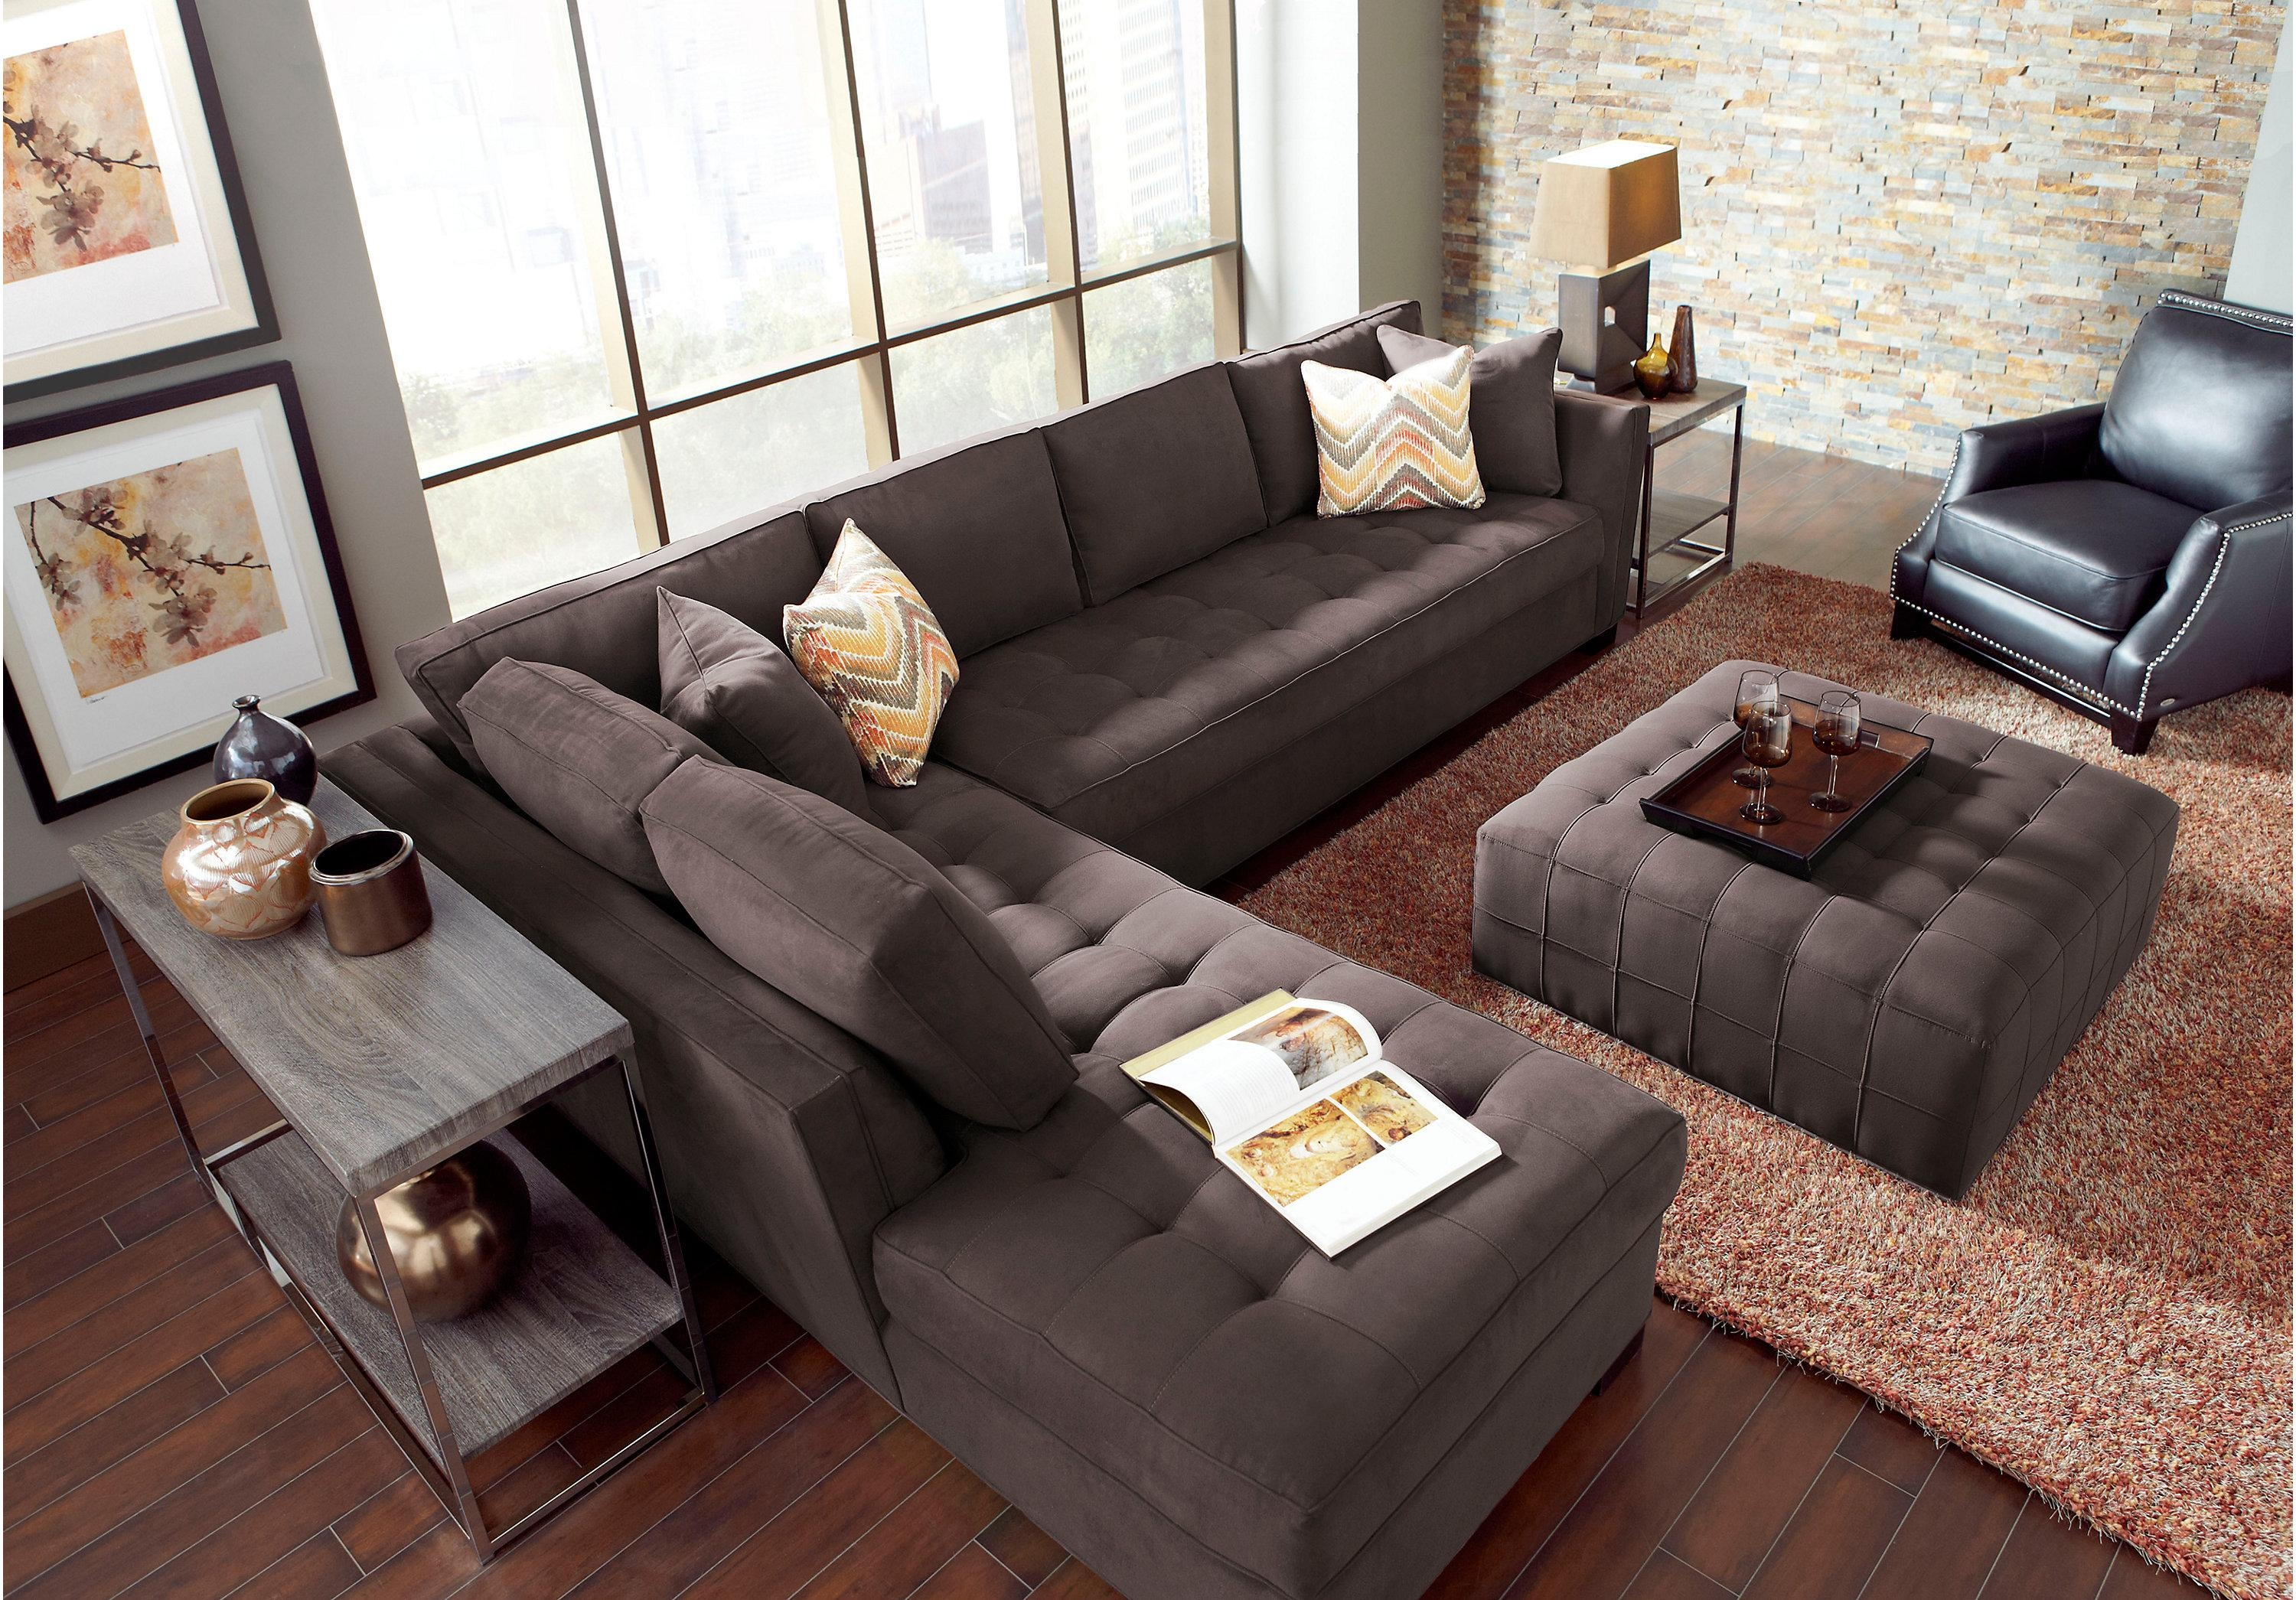 Furniture: Cindy Crawford Sectional Sofas | Cindy Crawford Leather Pertaining To Cindy Crawford Sectional Sofas (View 6 of 20)